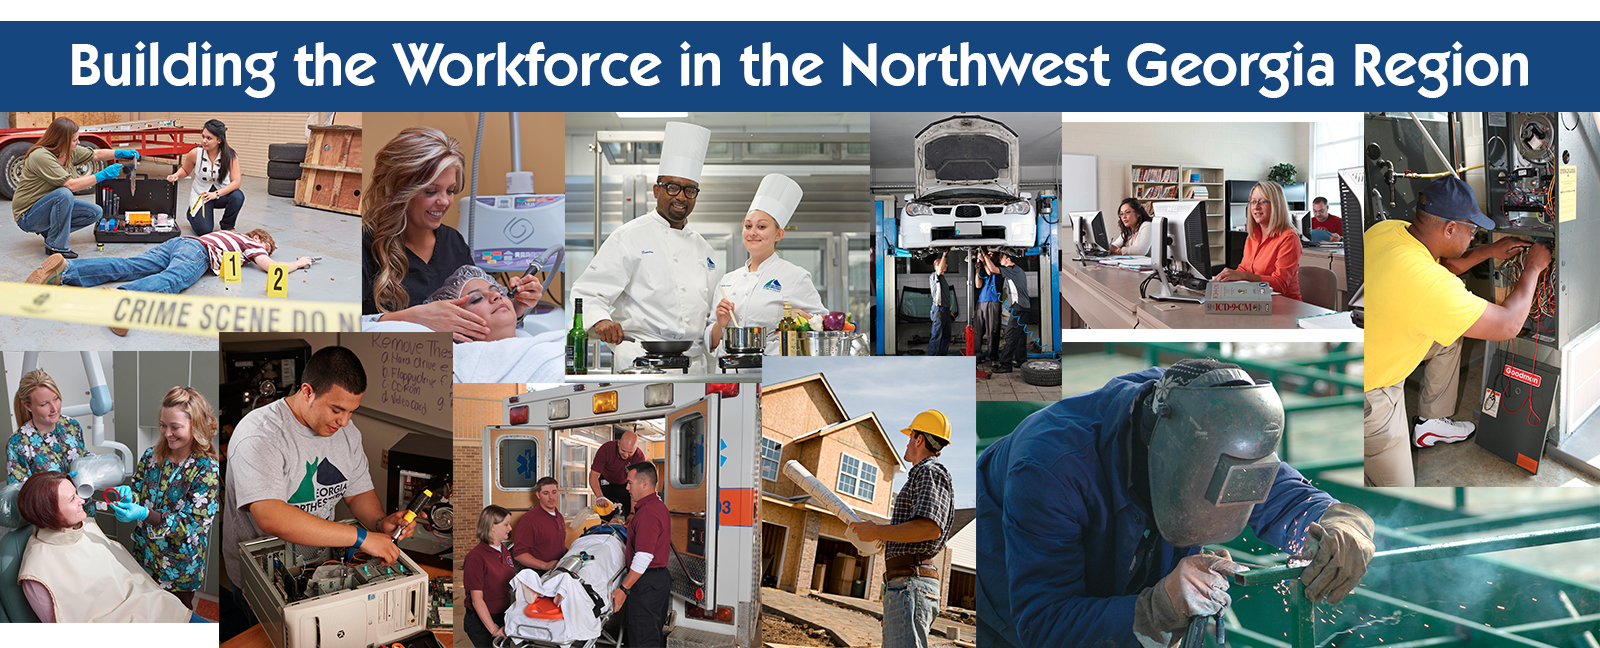 Building the Workforce in the Northwest Georgia Region